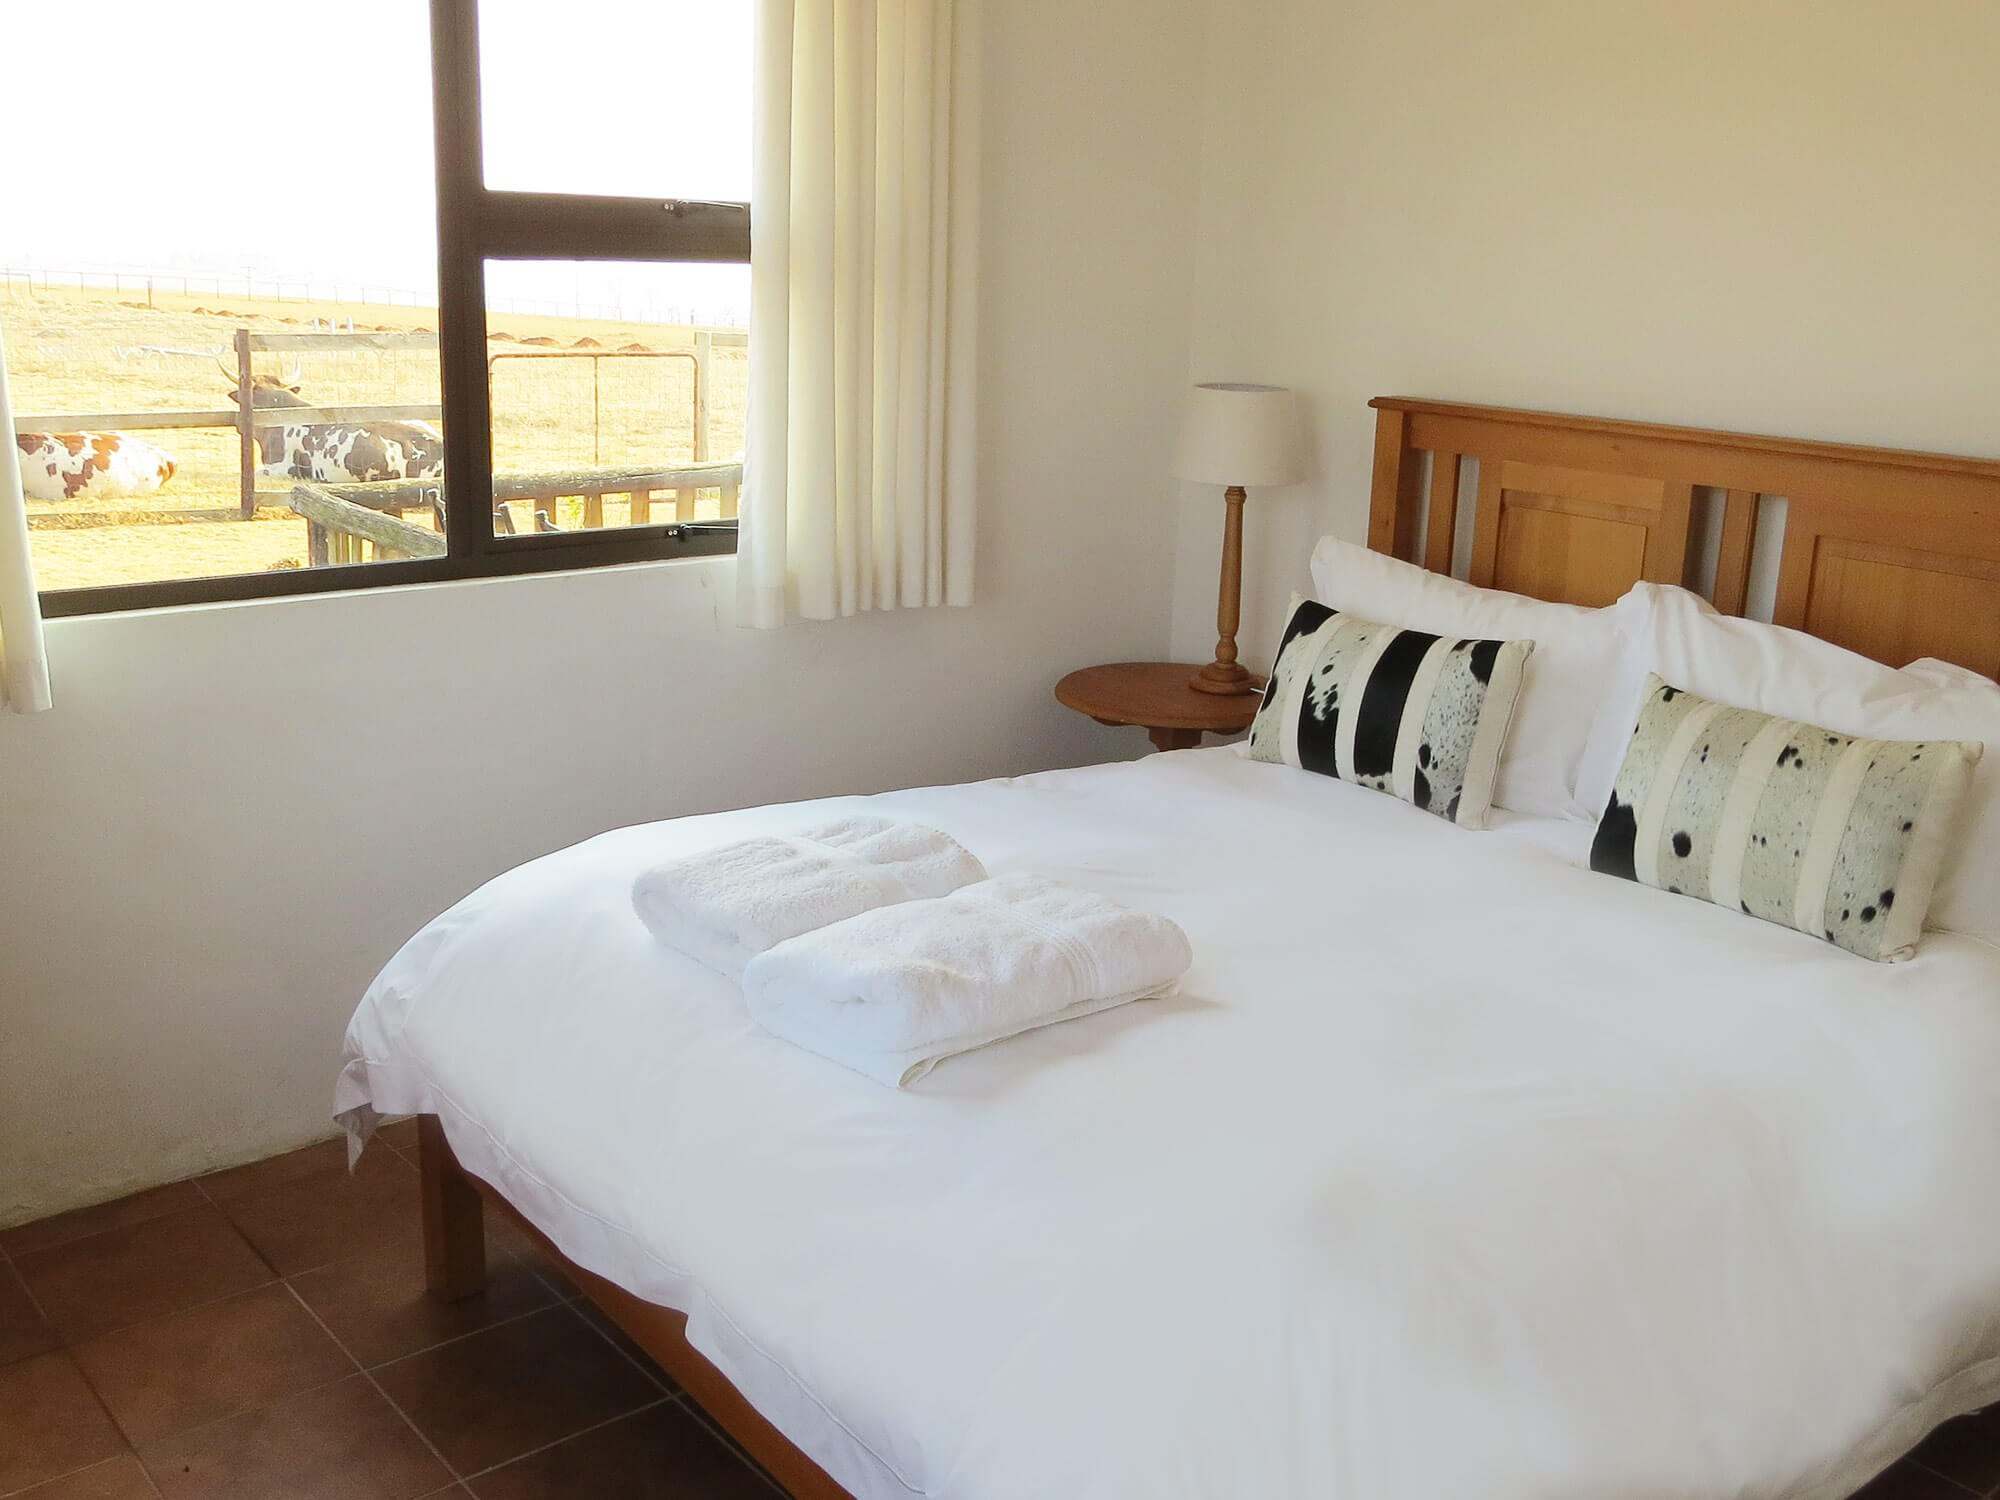 kzn-midlands-accommodation (5)